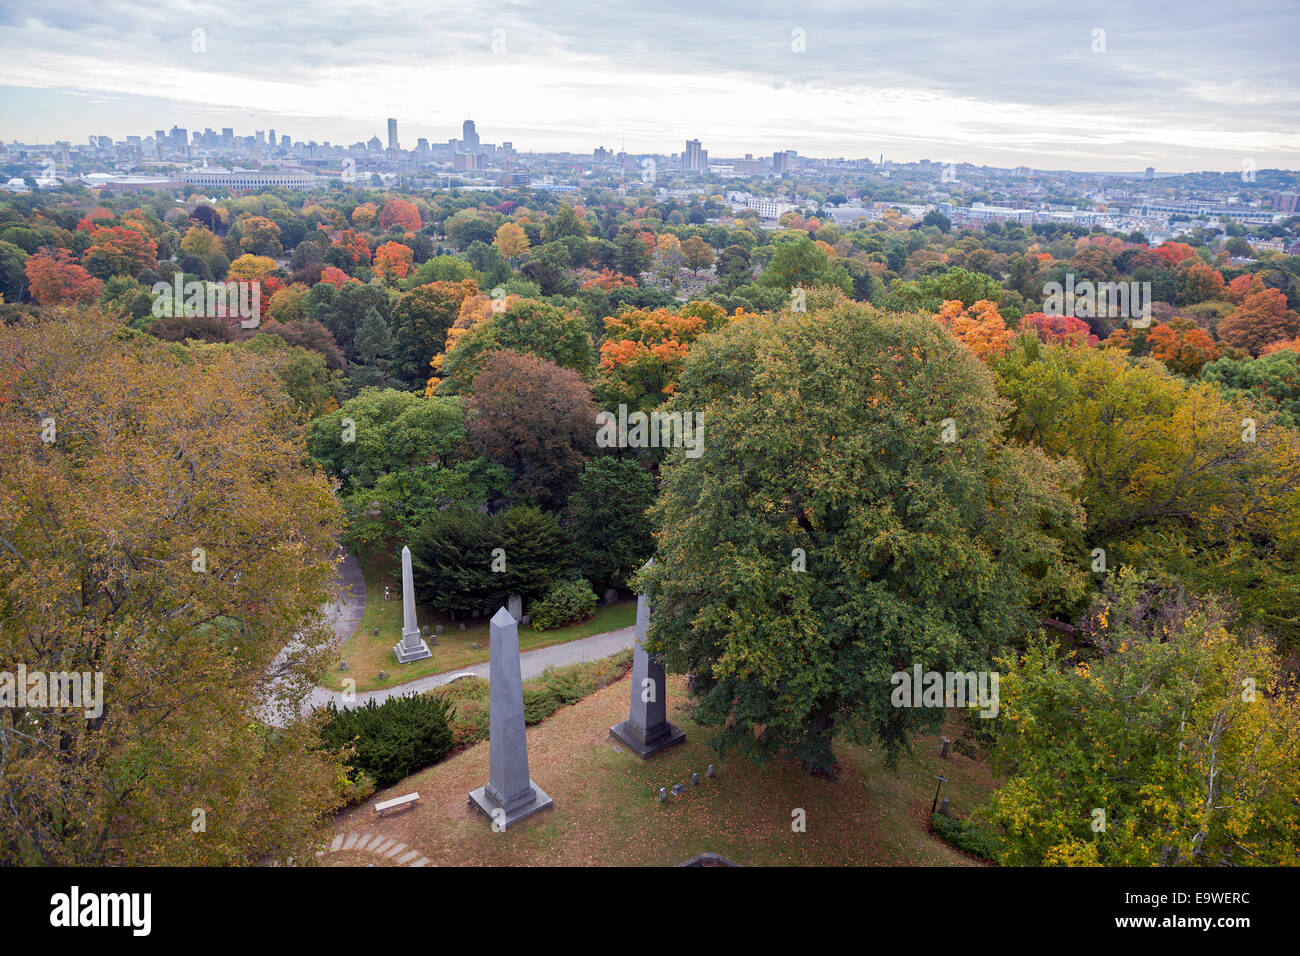 Mount Auburn Cemetery in Massachusetts, was founded in 1831 as 'America's first garden cemetery' or - Stock Image